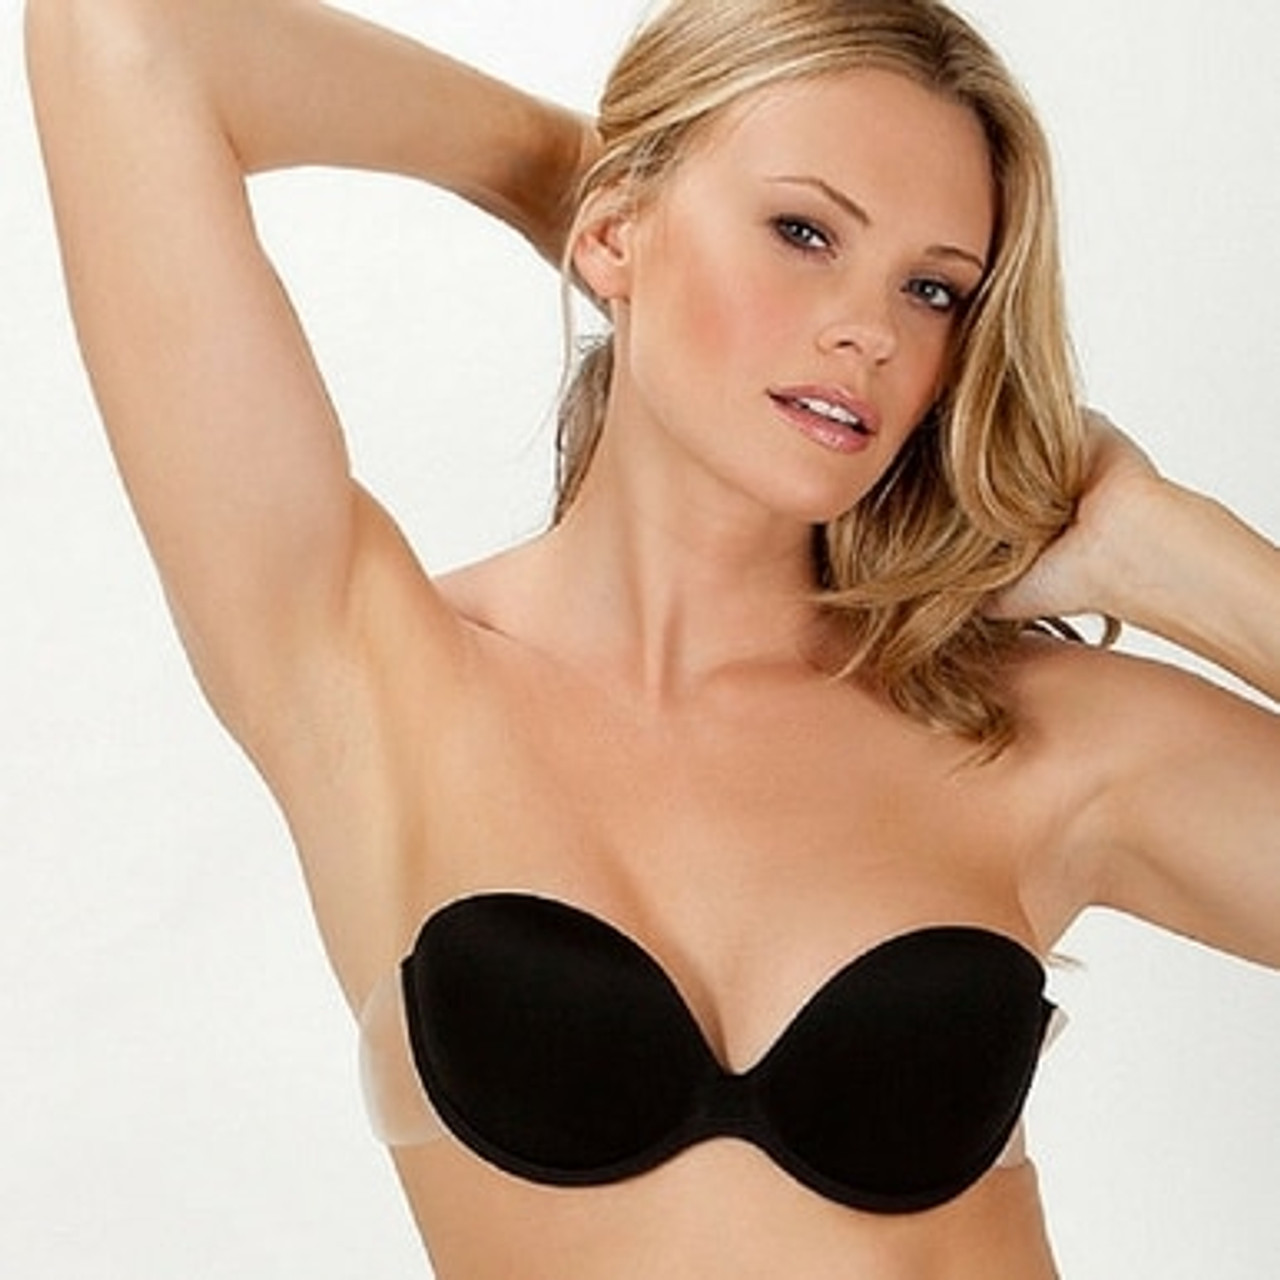 a4d85eea7ebef Fashion Forms Go Bare Push Up Backless Strapless Bra